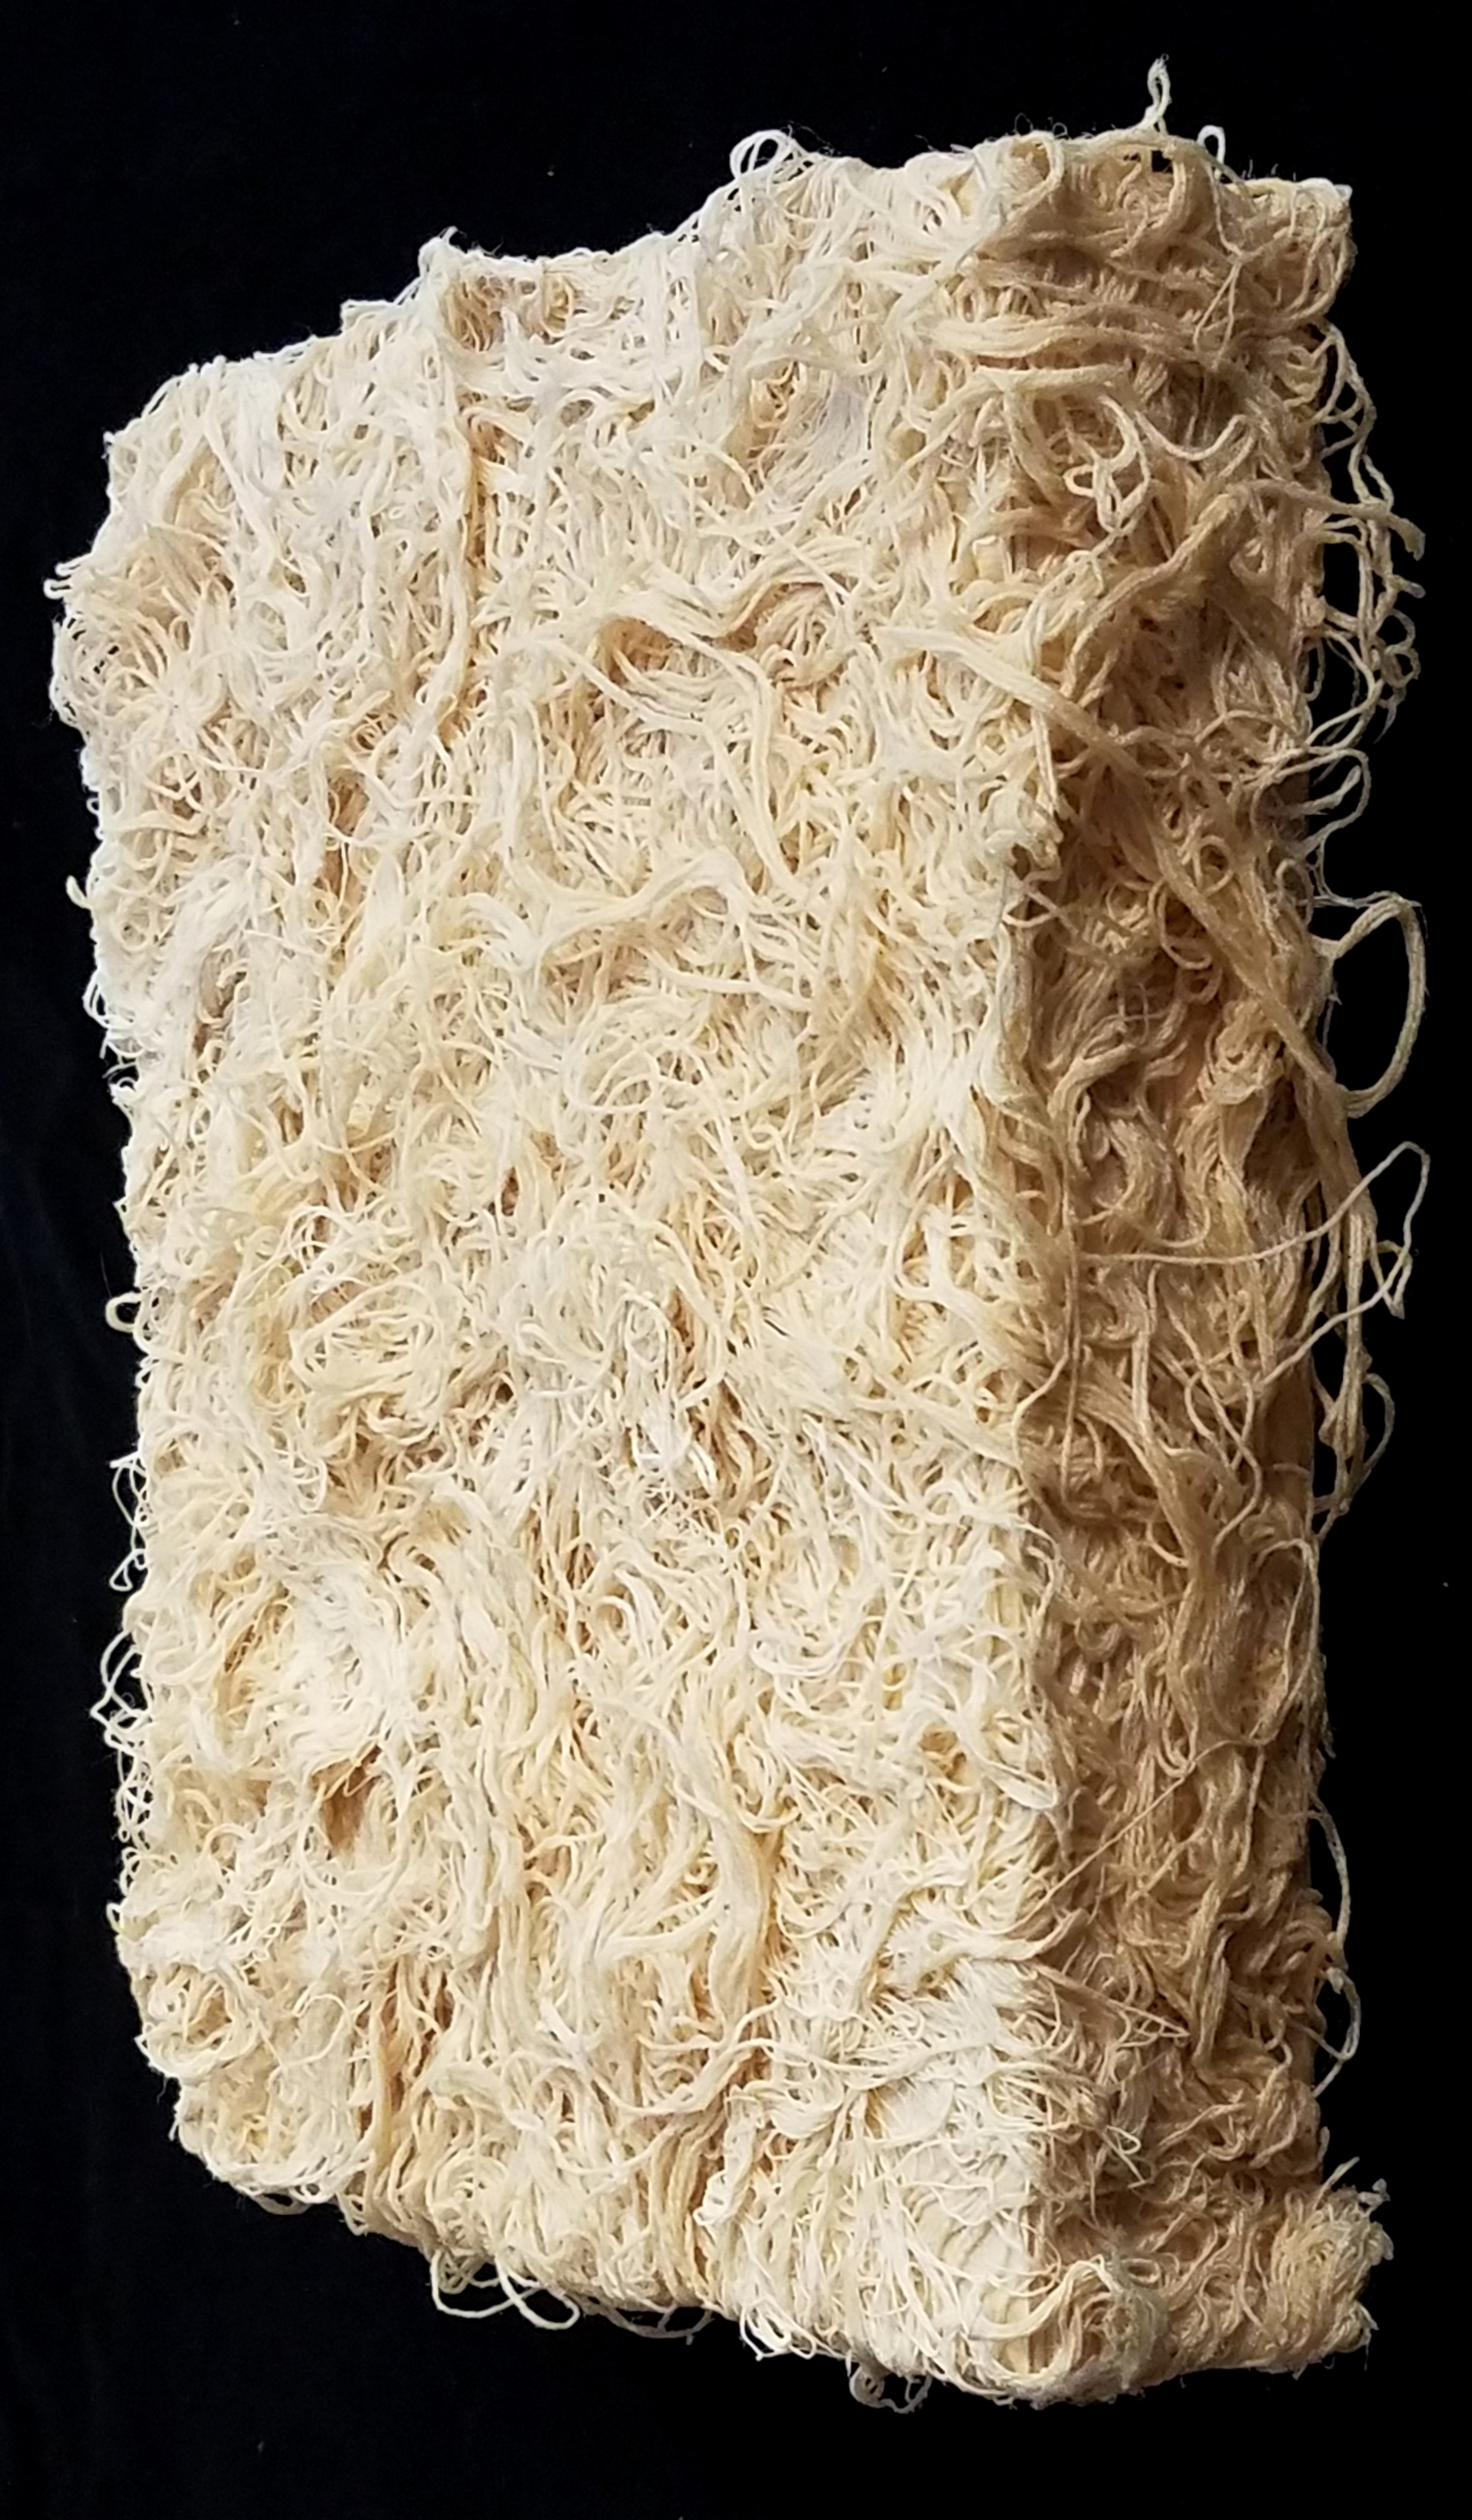 Thread Bare (detail)